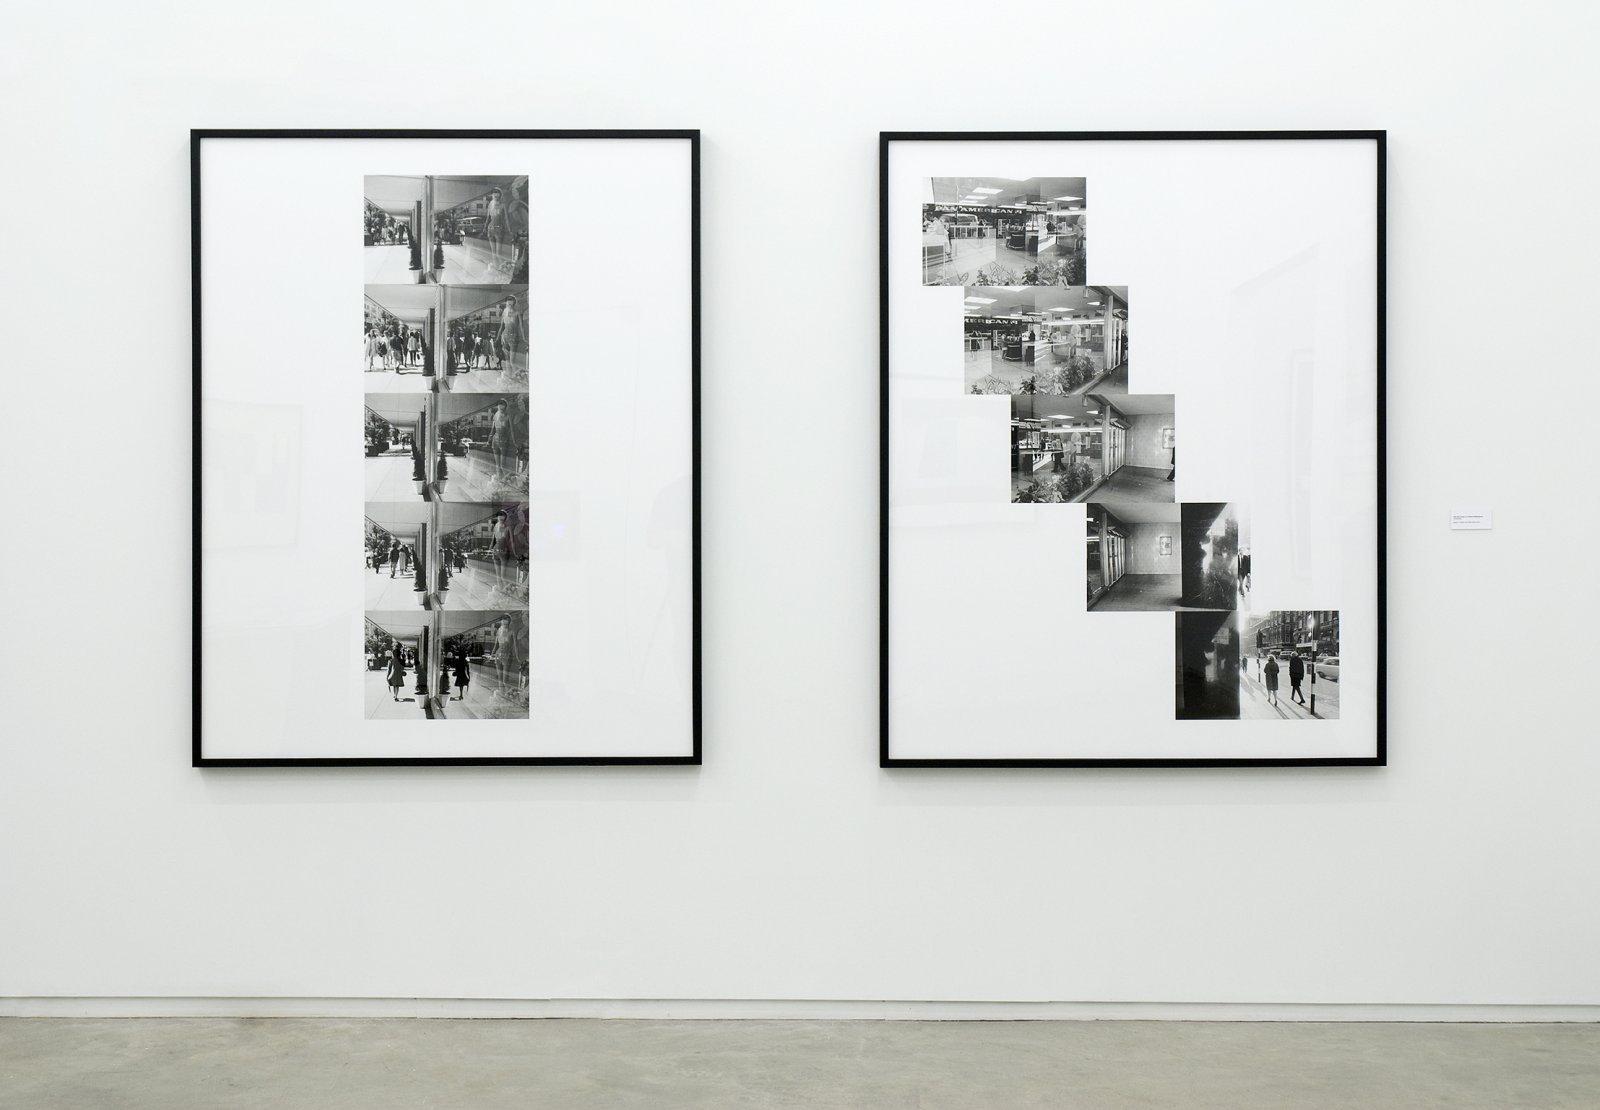 Ian Wallace, Street Reflections and Pan Am Scan, 1970–2009, 2 black and white photo inkets, each 61 x 48 in. (154 x 121 cm) by Ian Wallace